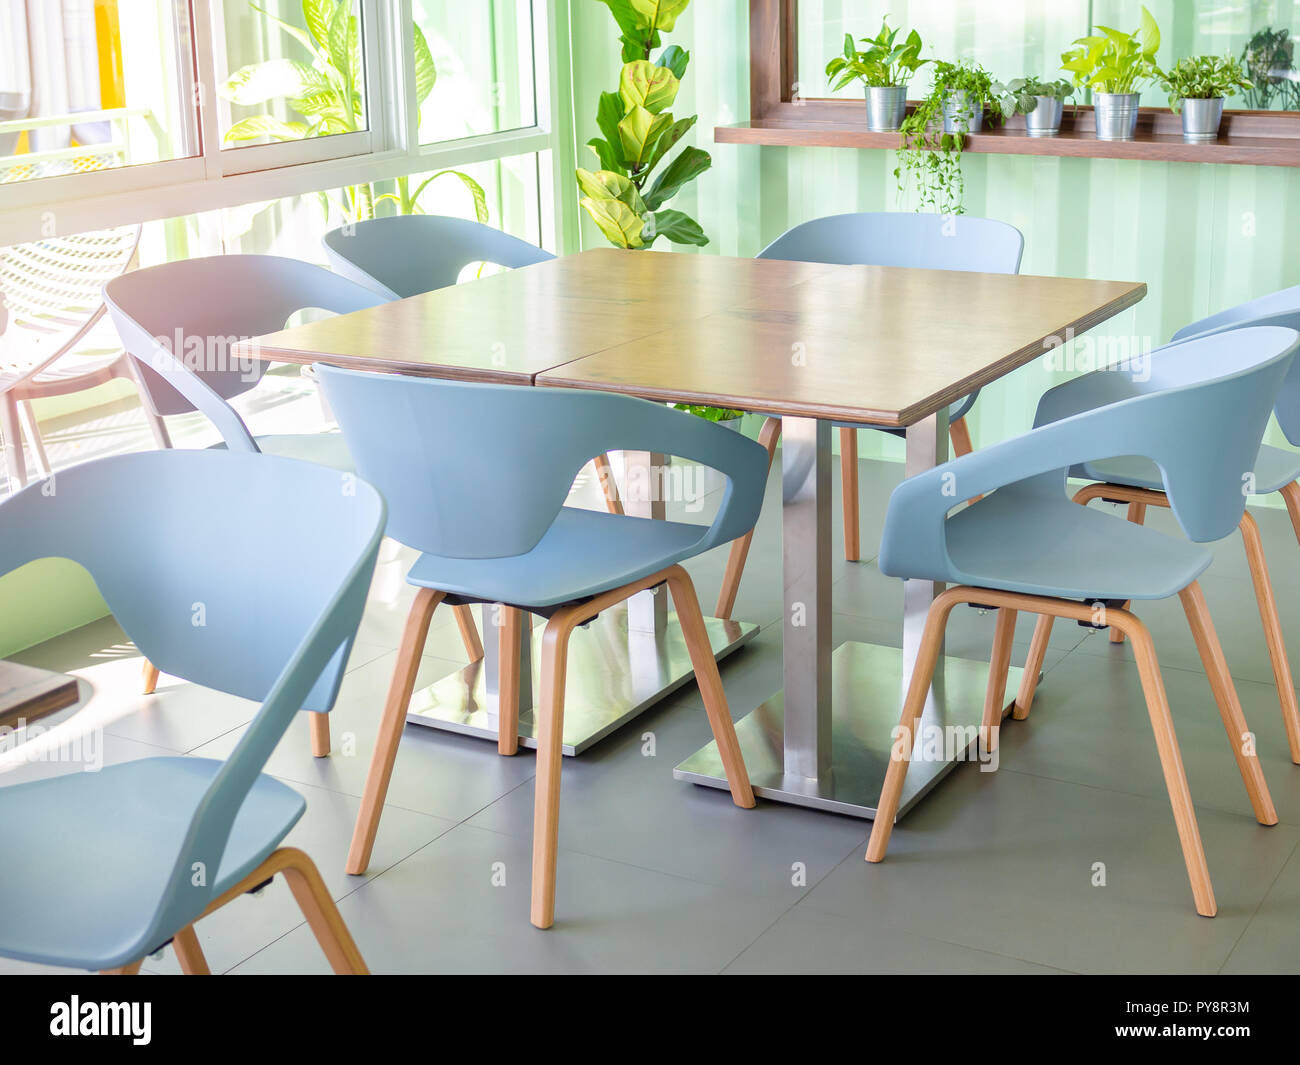 Modern blue chairs and wooden table near window glass and plants